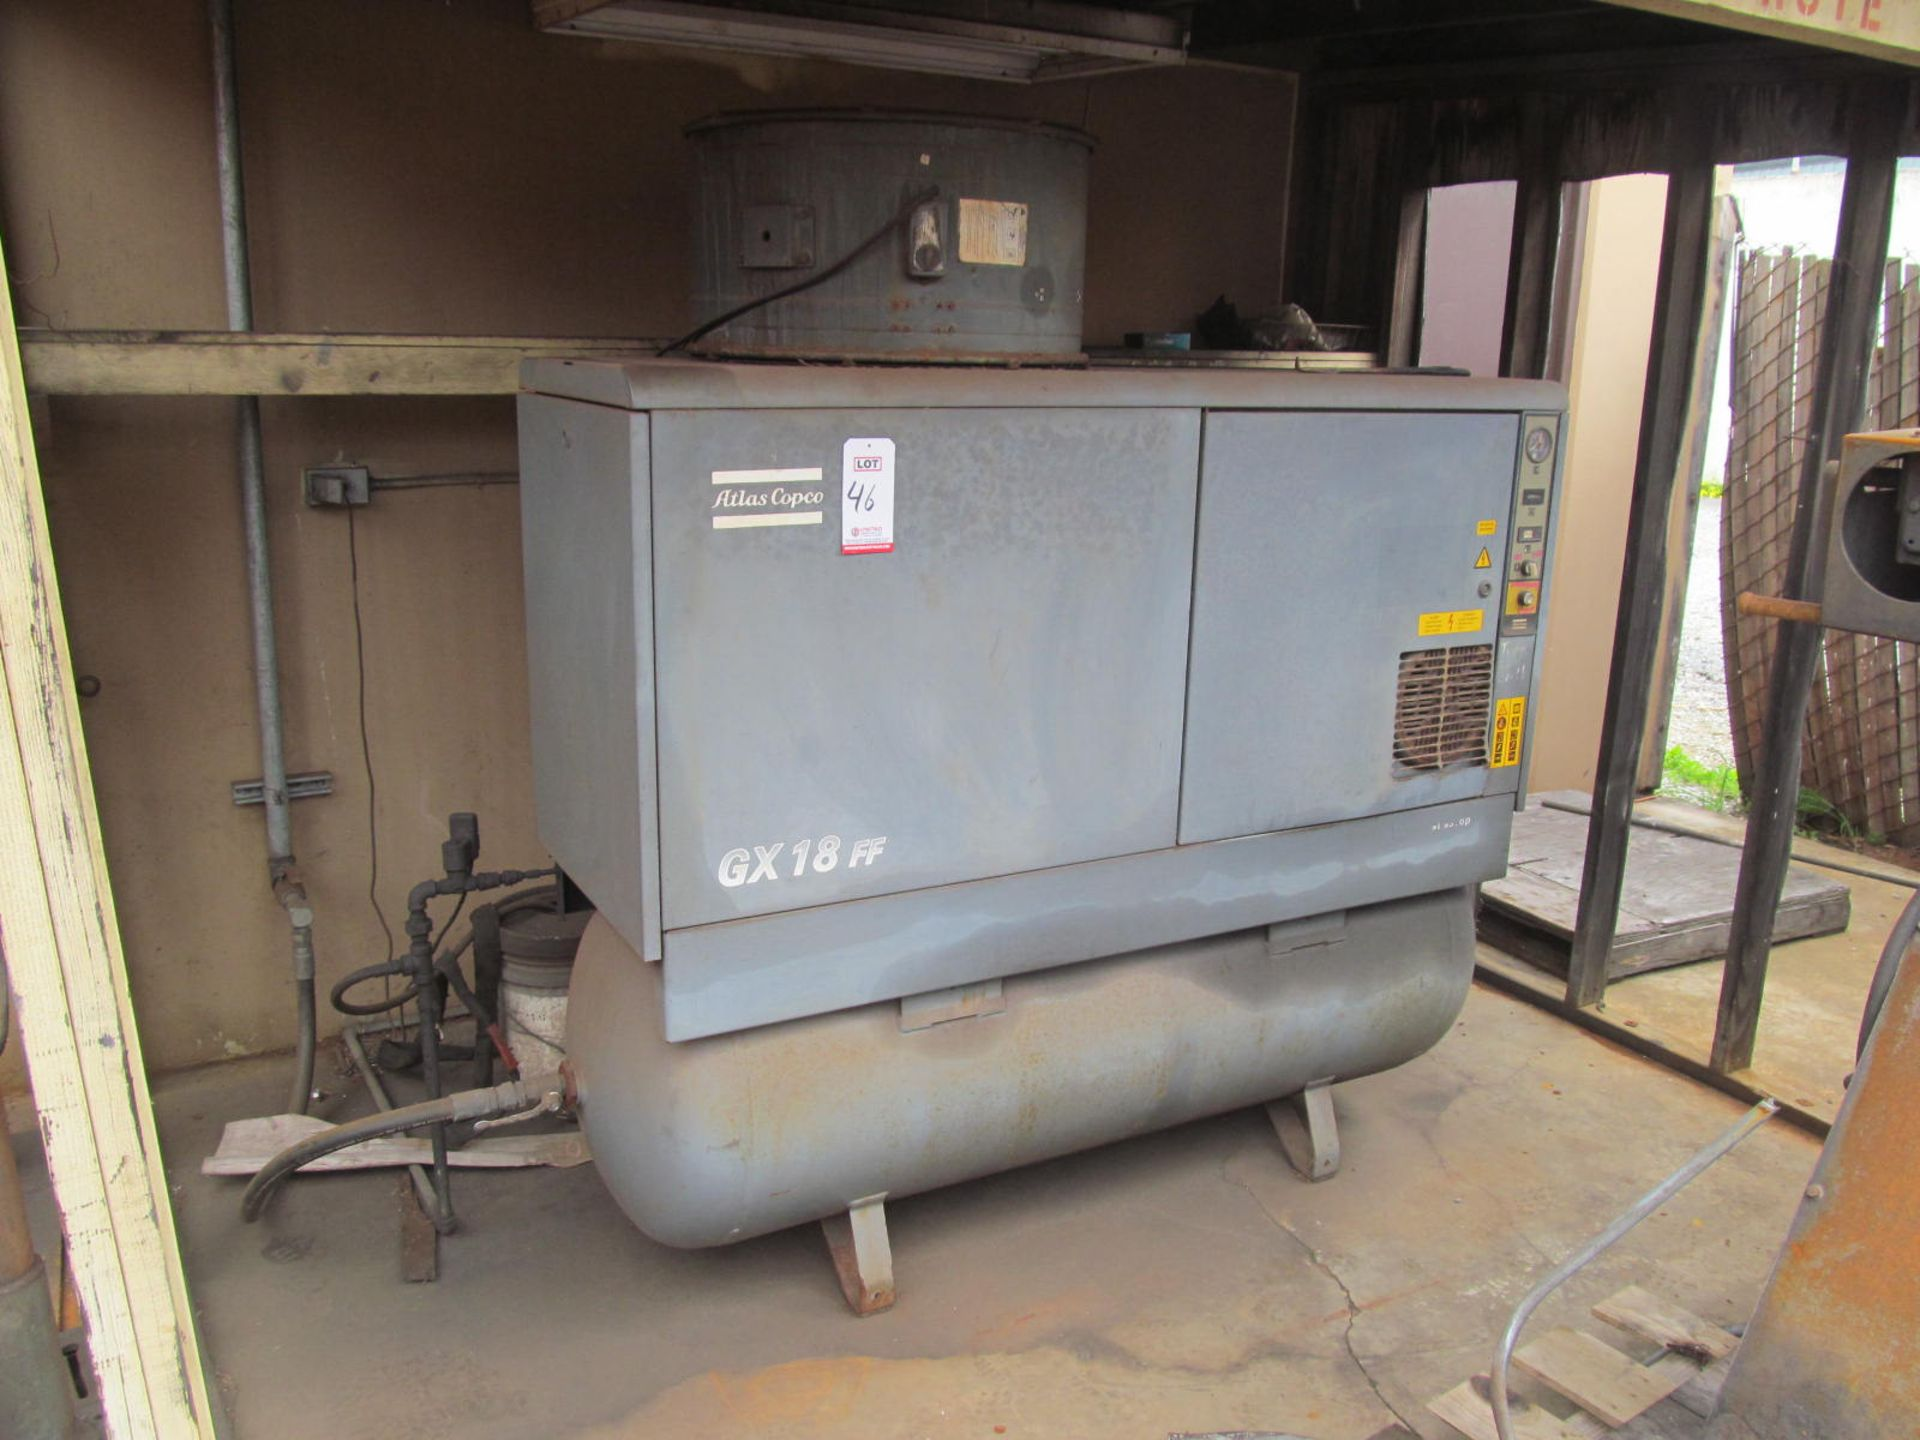 Lot 46 - ATLAS COPCO GX 18FF ROTARY SCREW AIR COMPRESSOR, 25 HP, 104 CFM, 129 PSI, MOUNTED ON HORIZONTAL